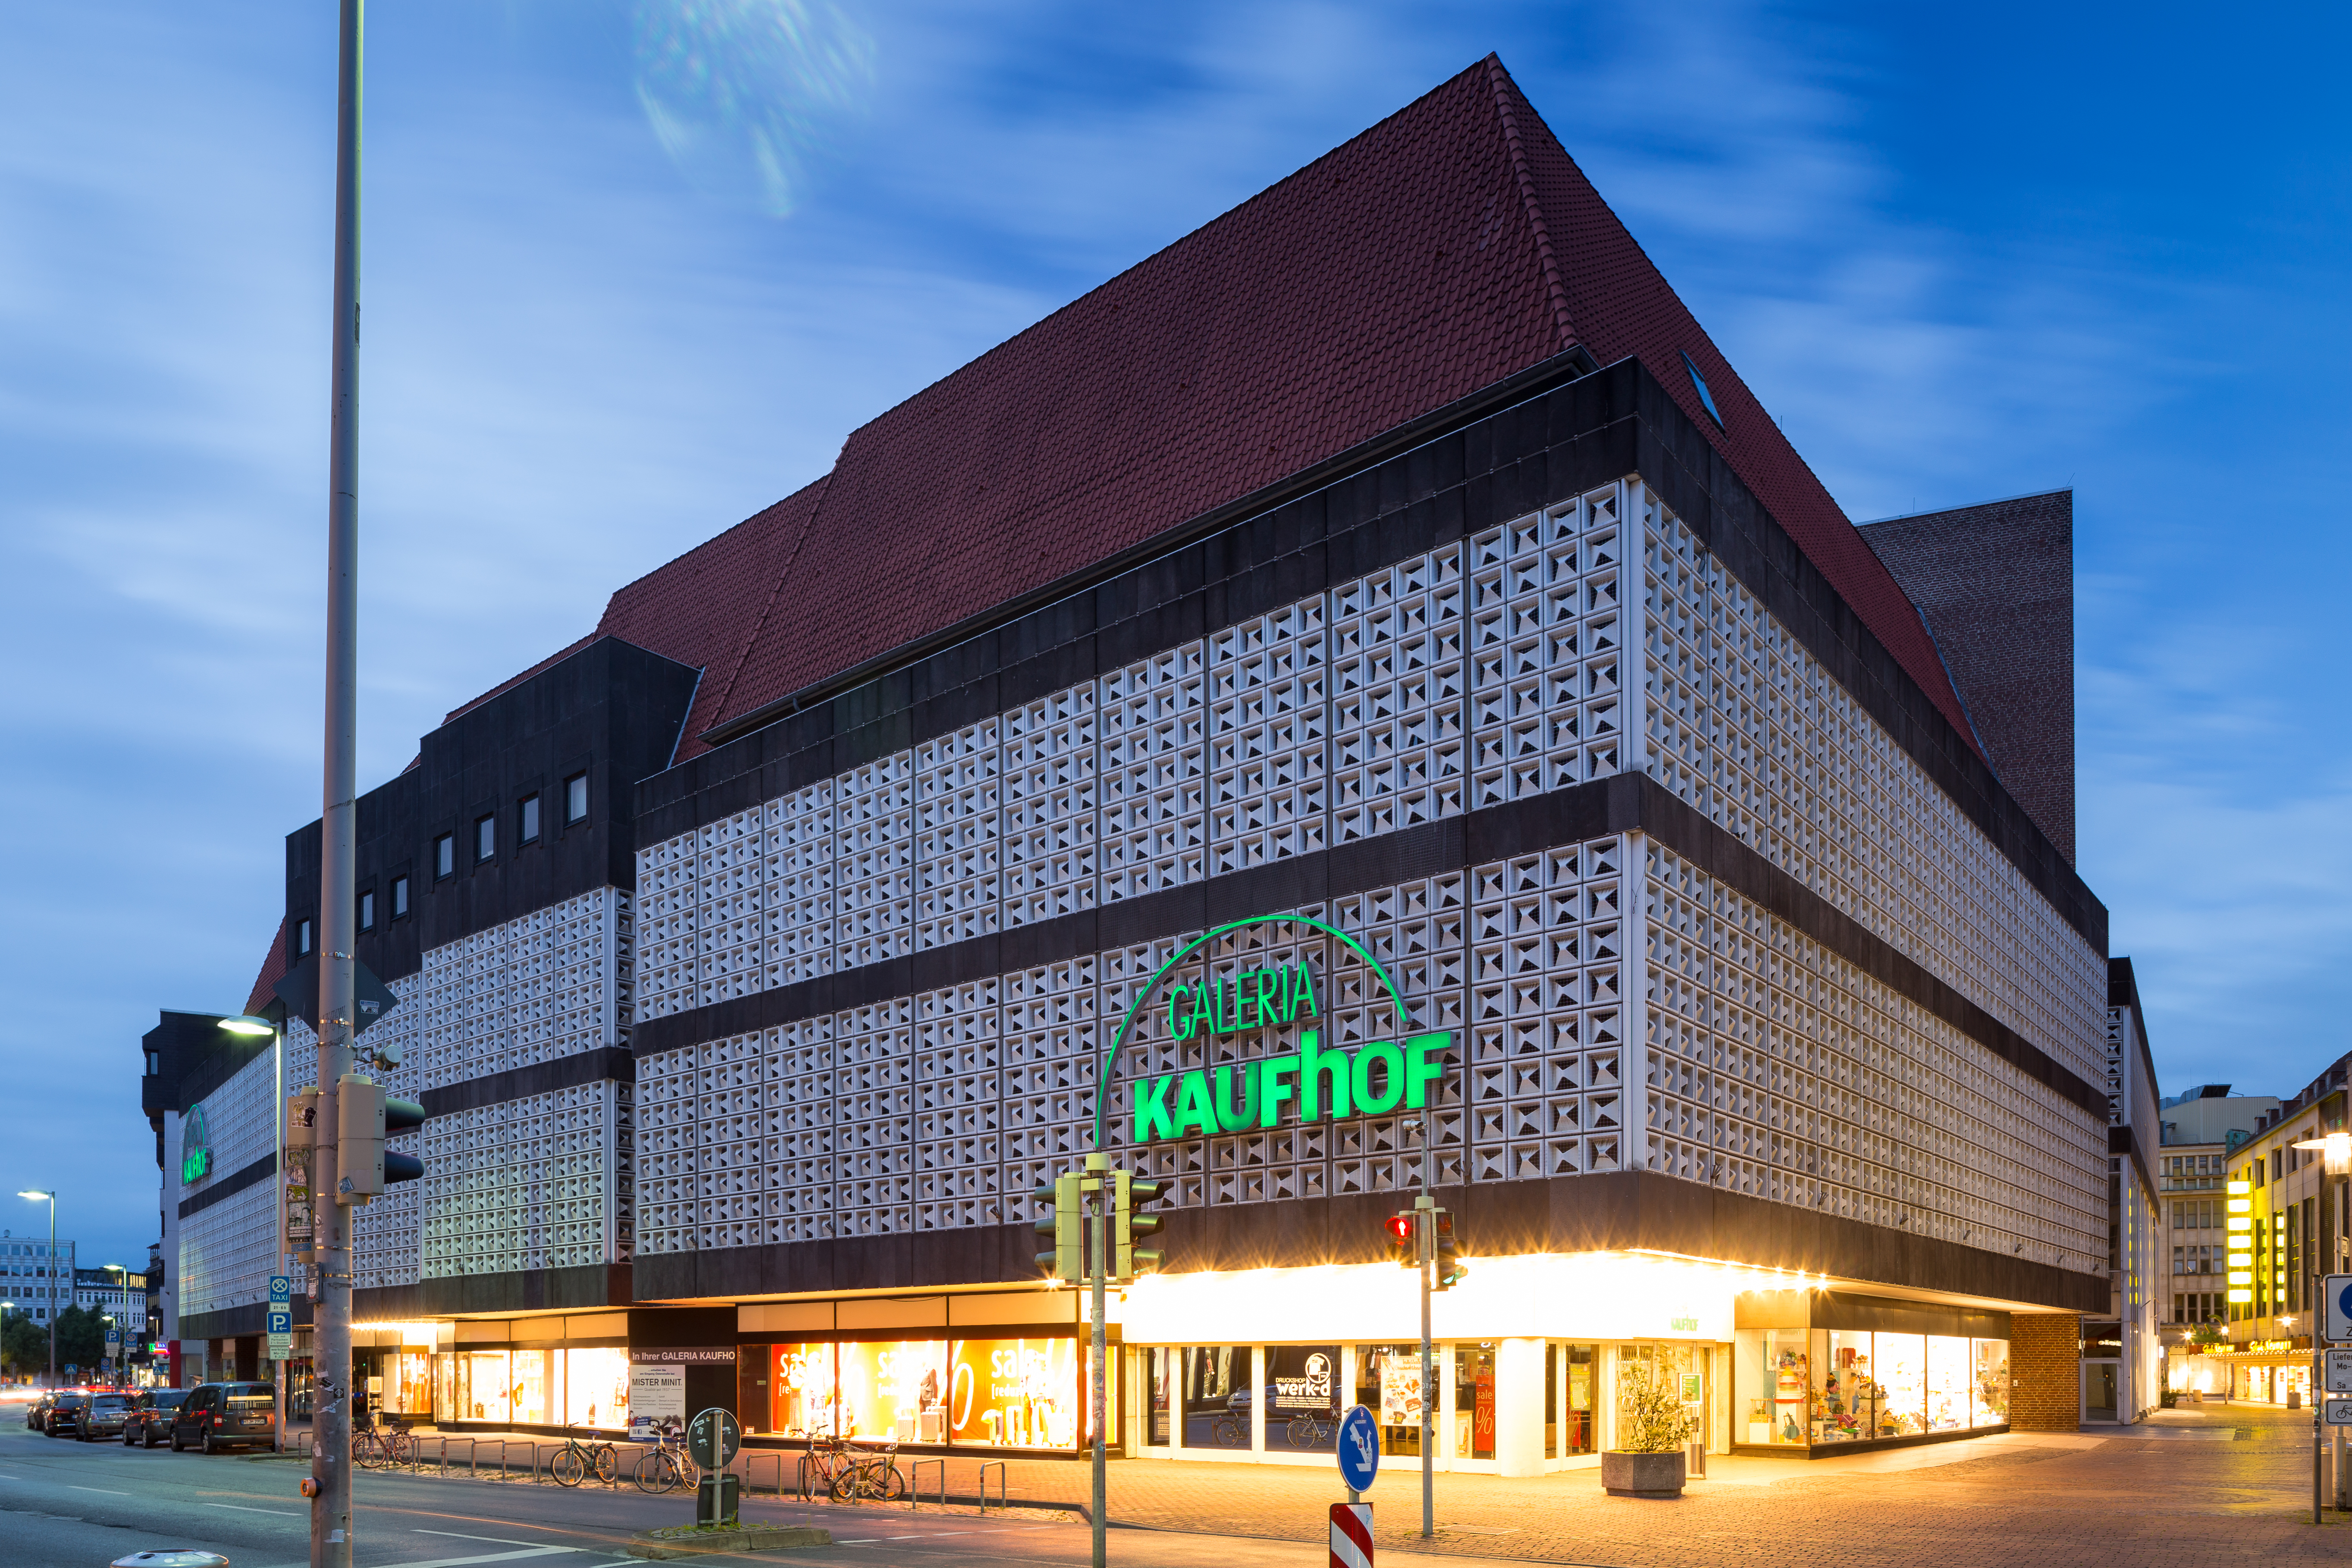 A Kaufhof department store in Hannover, Germany.